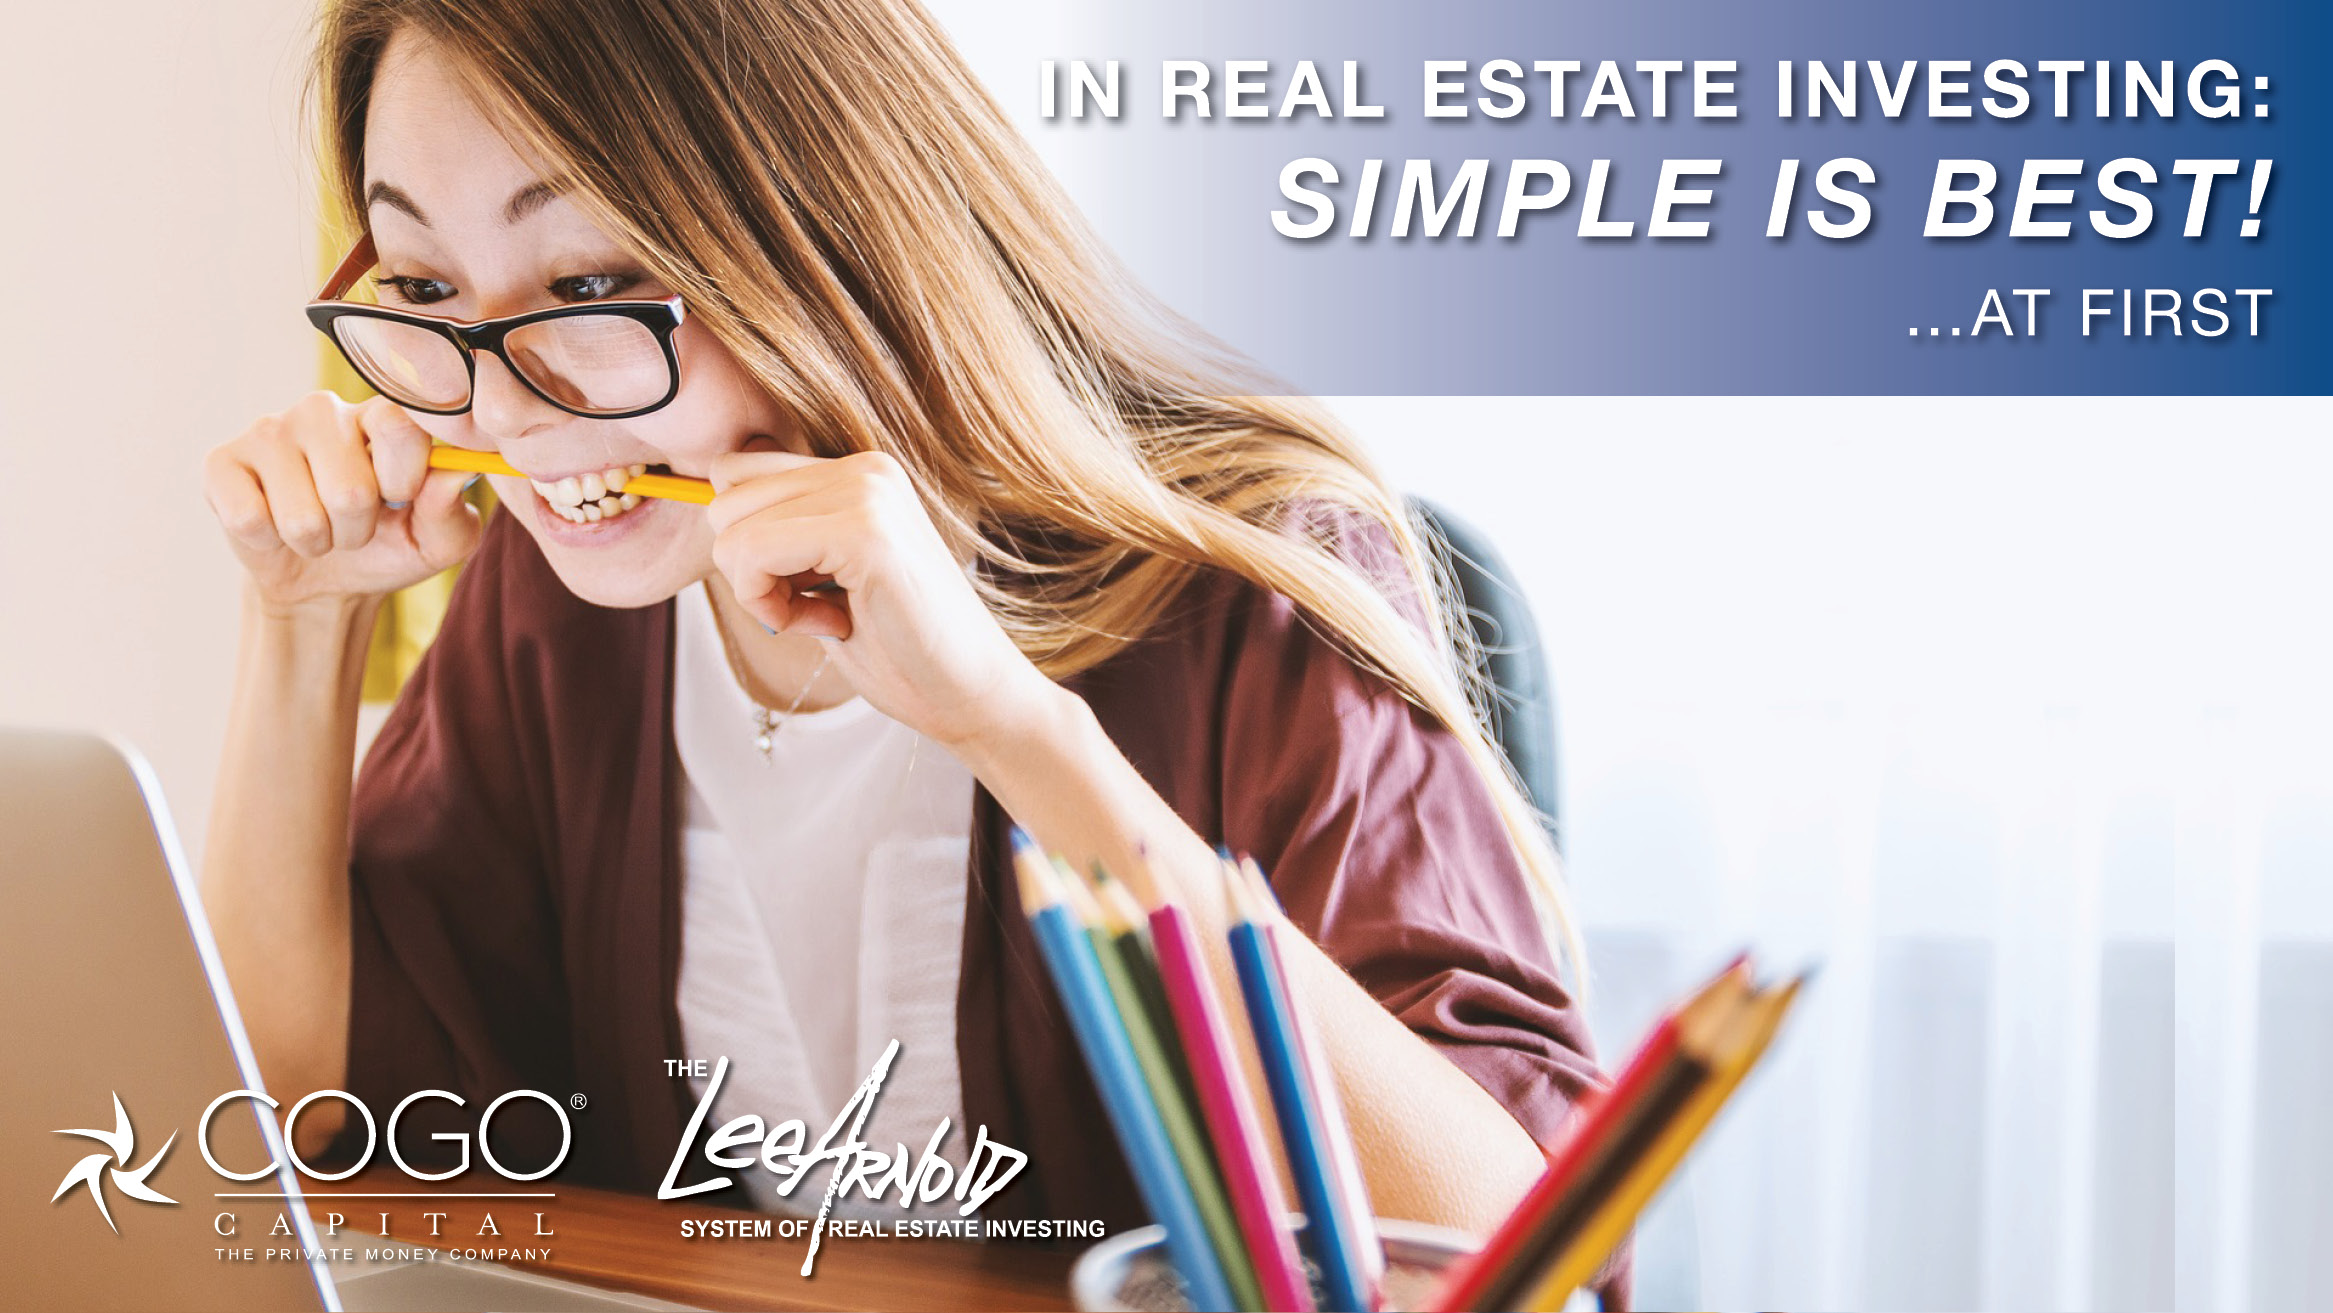 In Real Estate Investing: Simple is Best (at first)